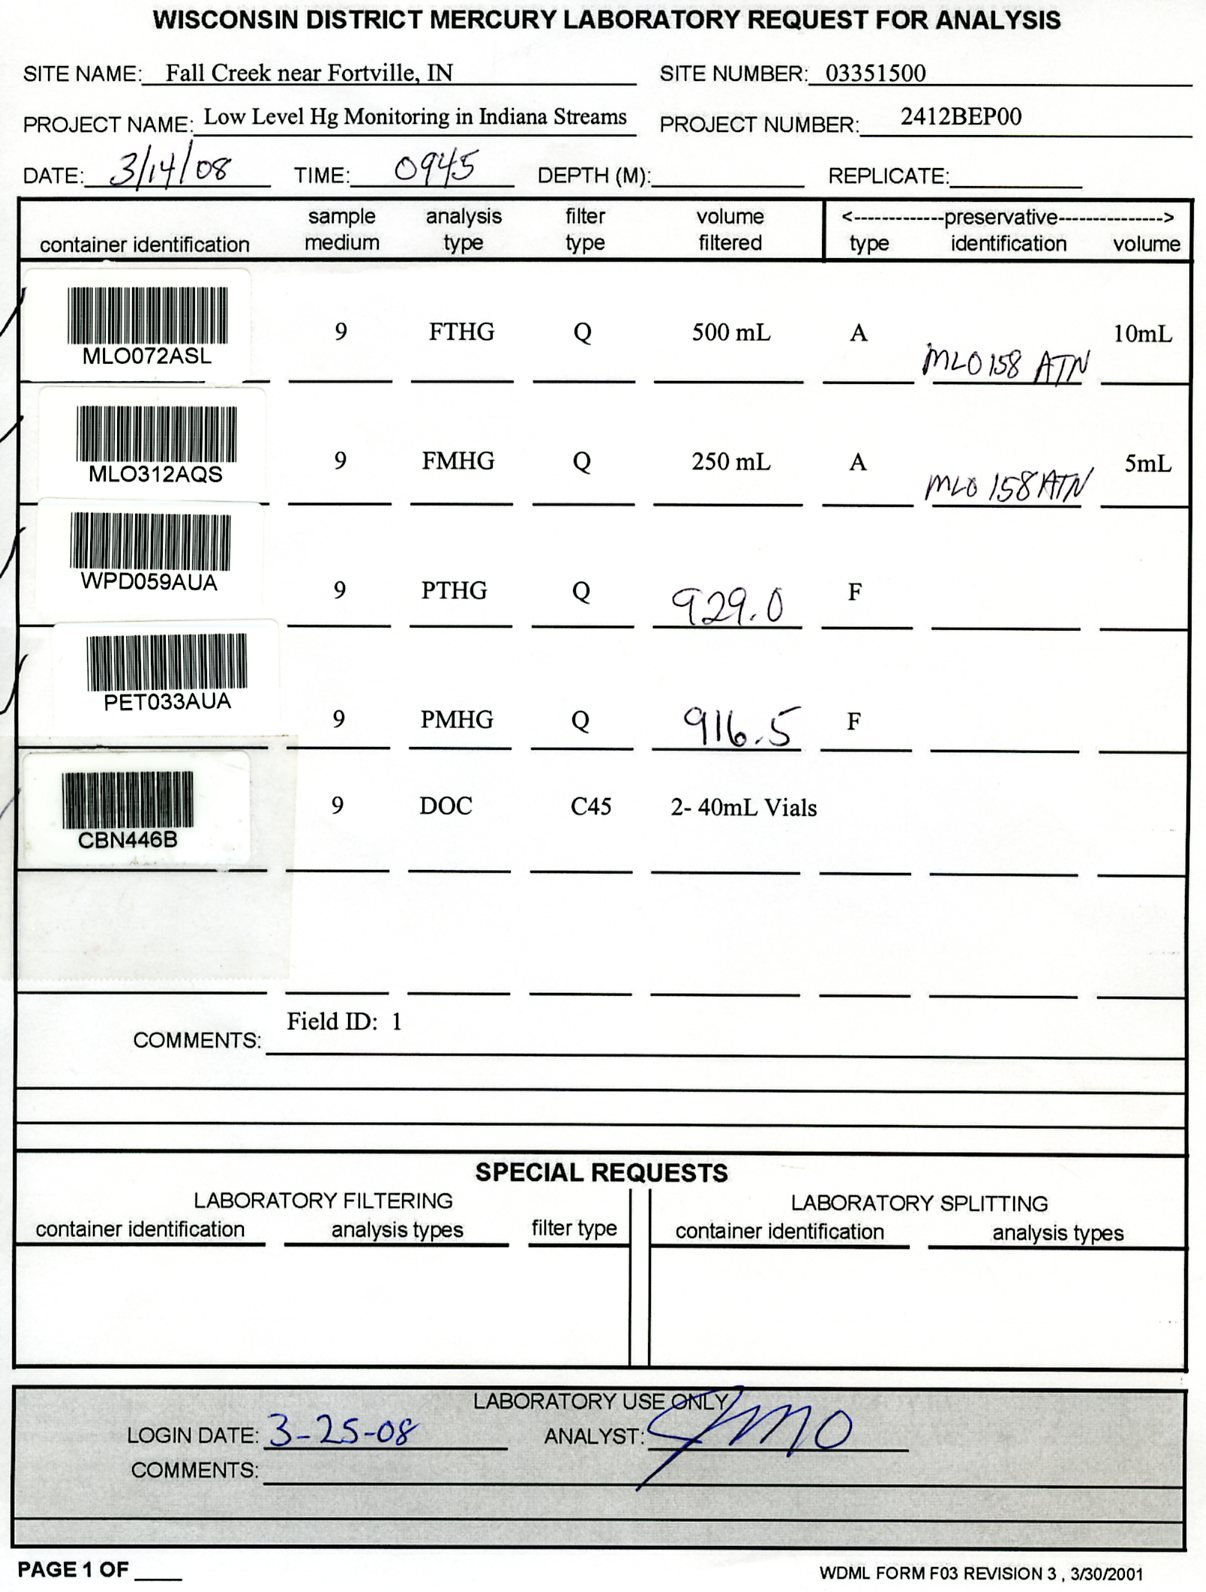 Sample Rfa Form Filled Out Properly Usgs Mercury